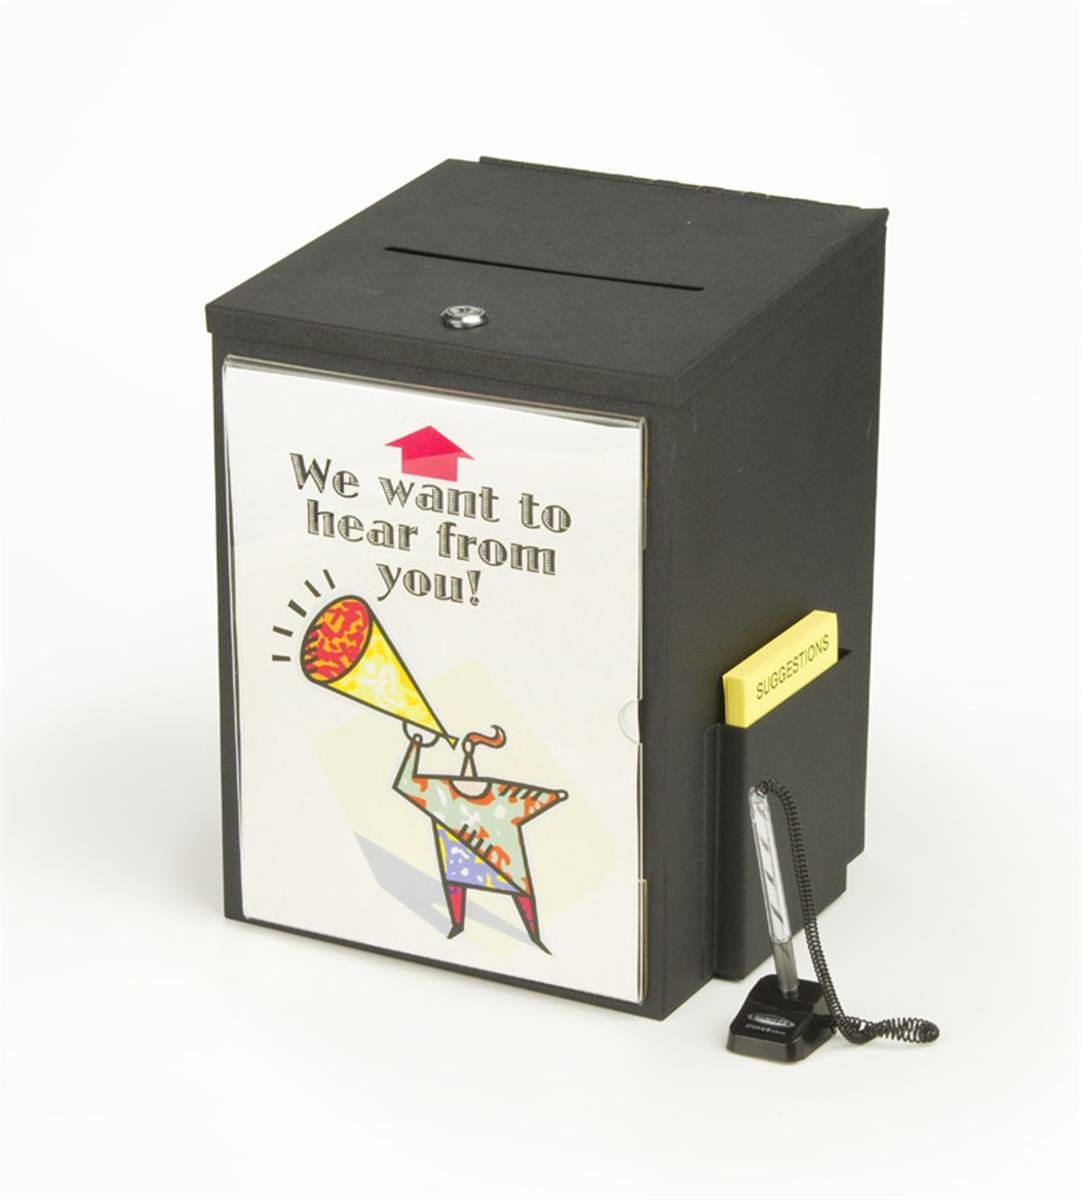 Locking, Metal Suggestion Box With Hinged Lid, Security Pen and 8.5 by 11 Inch Sign Holder - Black